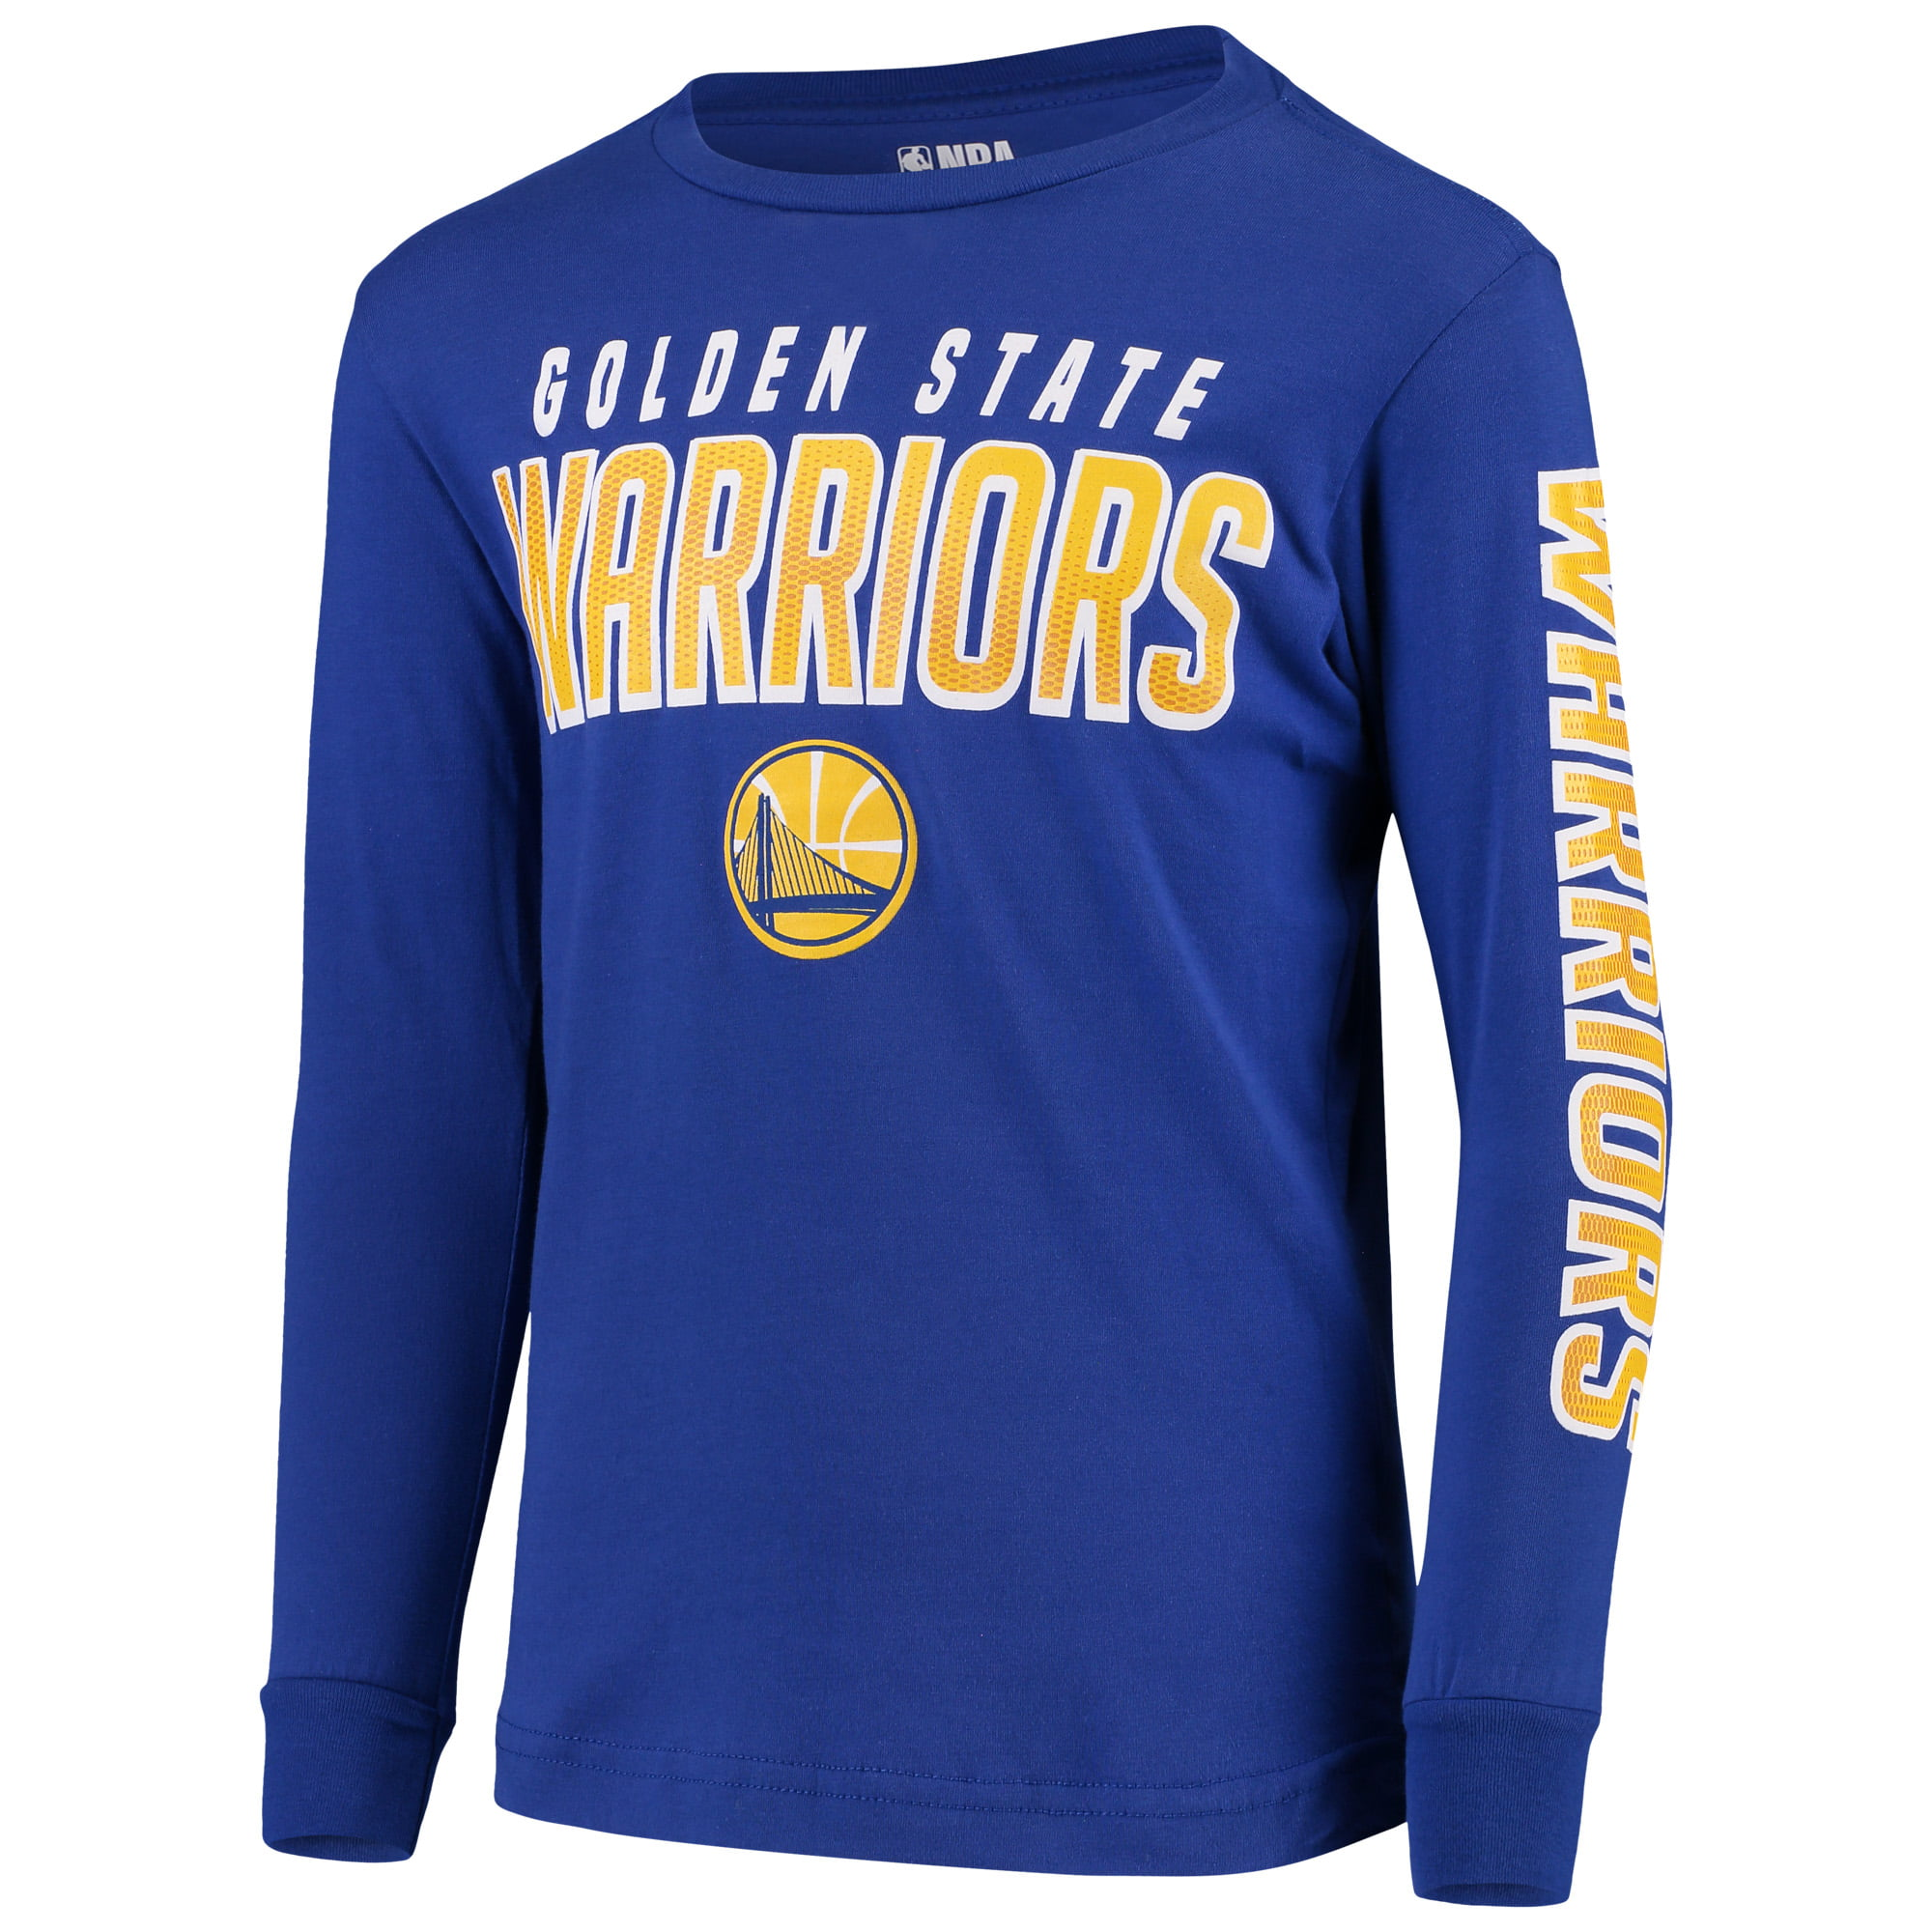 buy popular 77ffa 13c3b Golden State Warriors Team Shop - Walmart.com